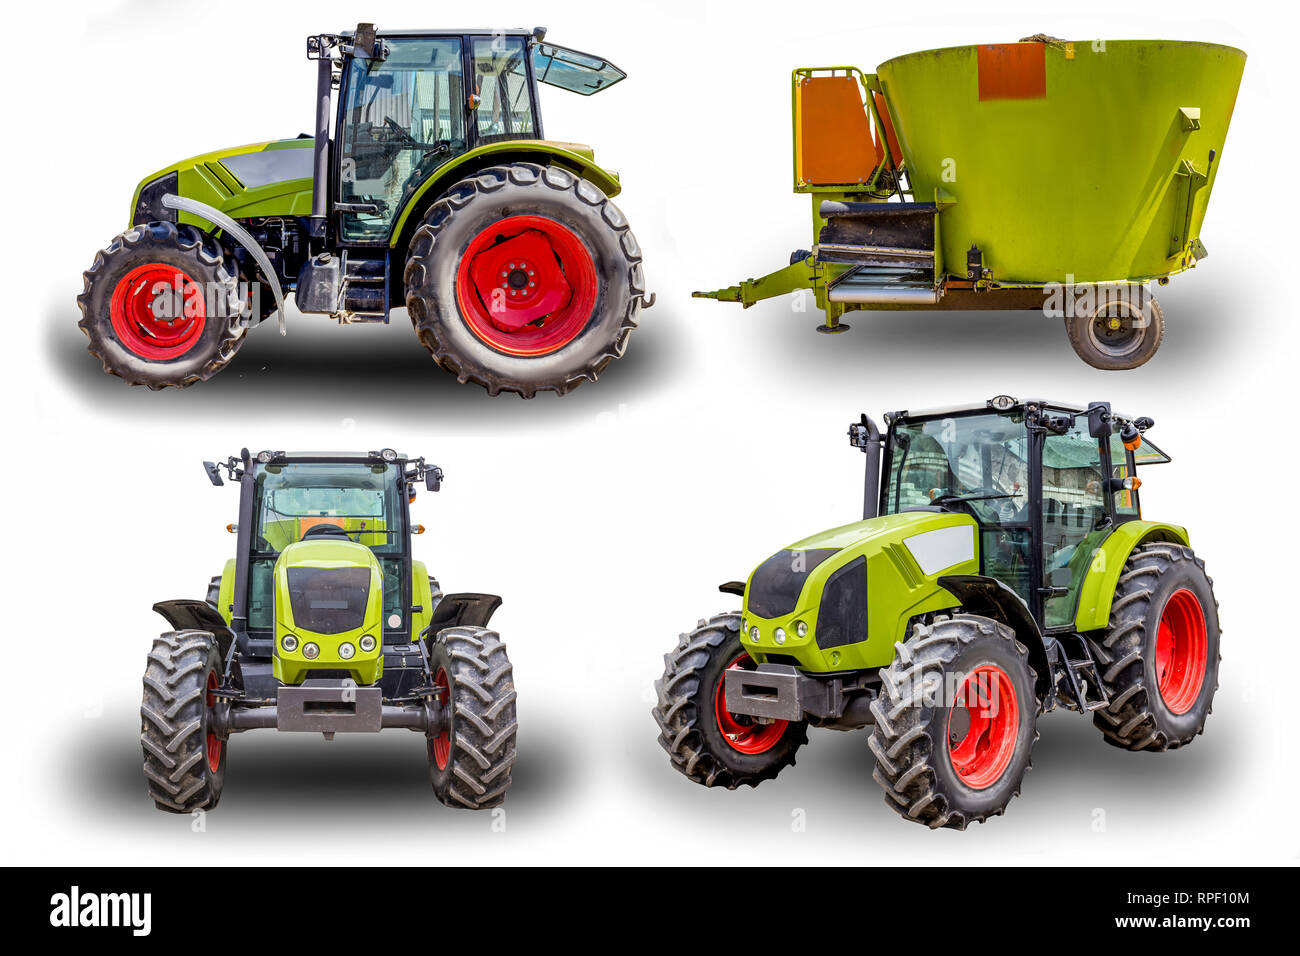 Powerful tractor and distributor of feed. General view, side view and front view. Necessary equipment for a dairy farm. Four isolated images. - Stock Image